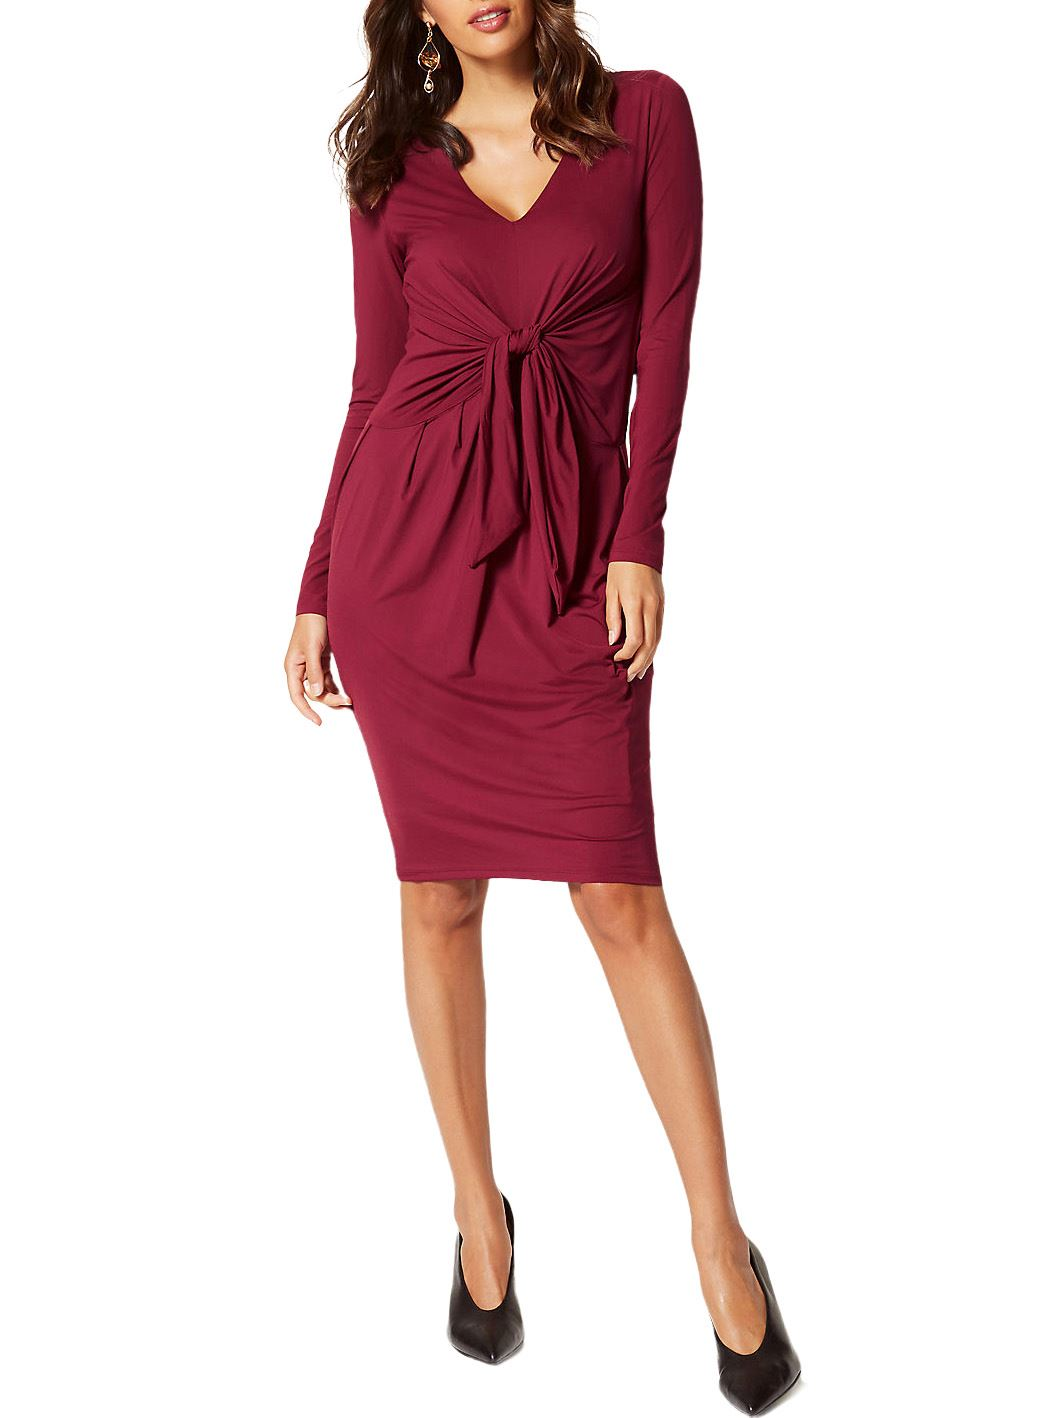 Ex-M-amp-S-Marks-Spencer-Tie-Front-Stretch-Midi-Dress-Burgundy-or-Black-Size-6-22 thumbnail 9